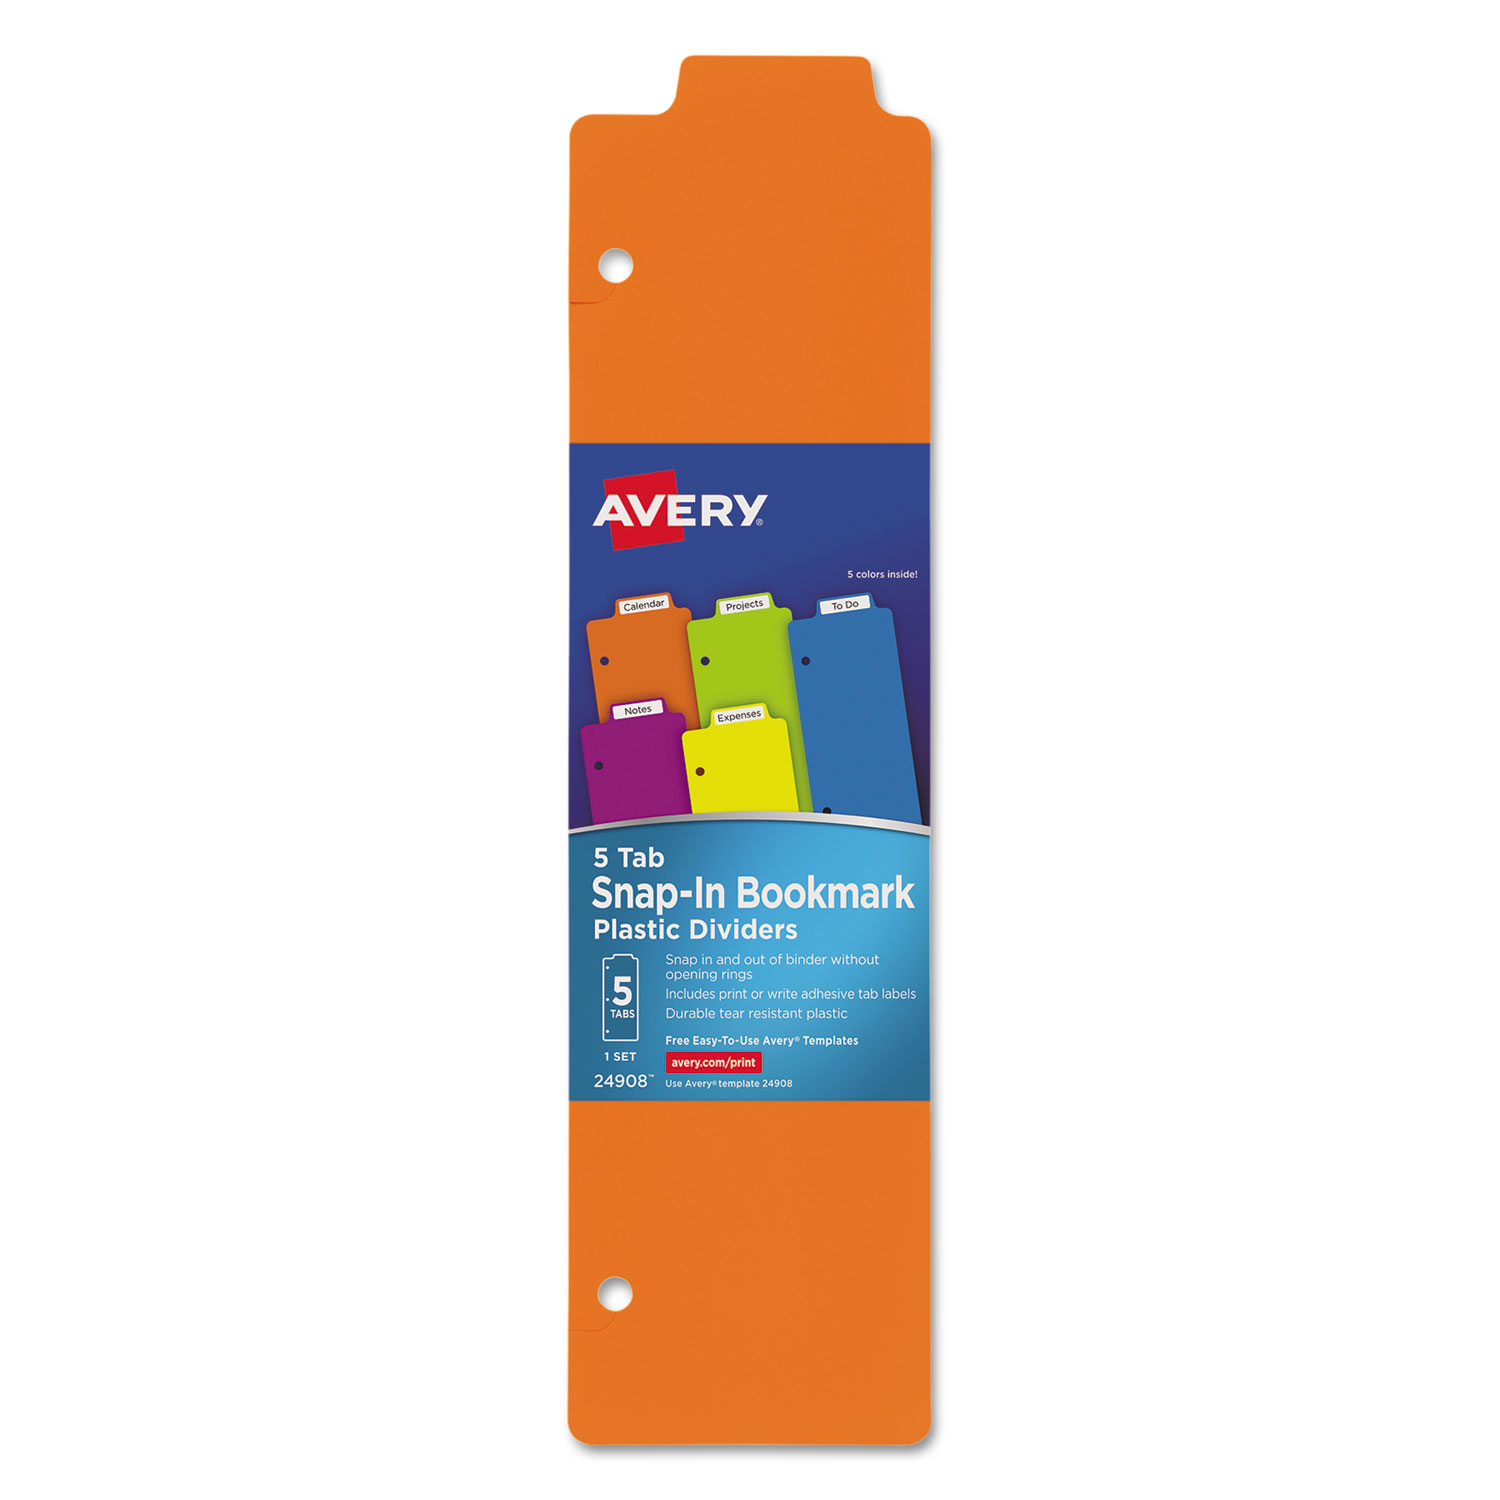 Avery Snap-In Plastic Bookmark Dividers 24908, 5 Tabs, 1 Set, Multicolor by Avery Products Corporation